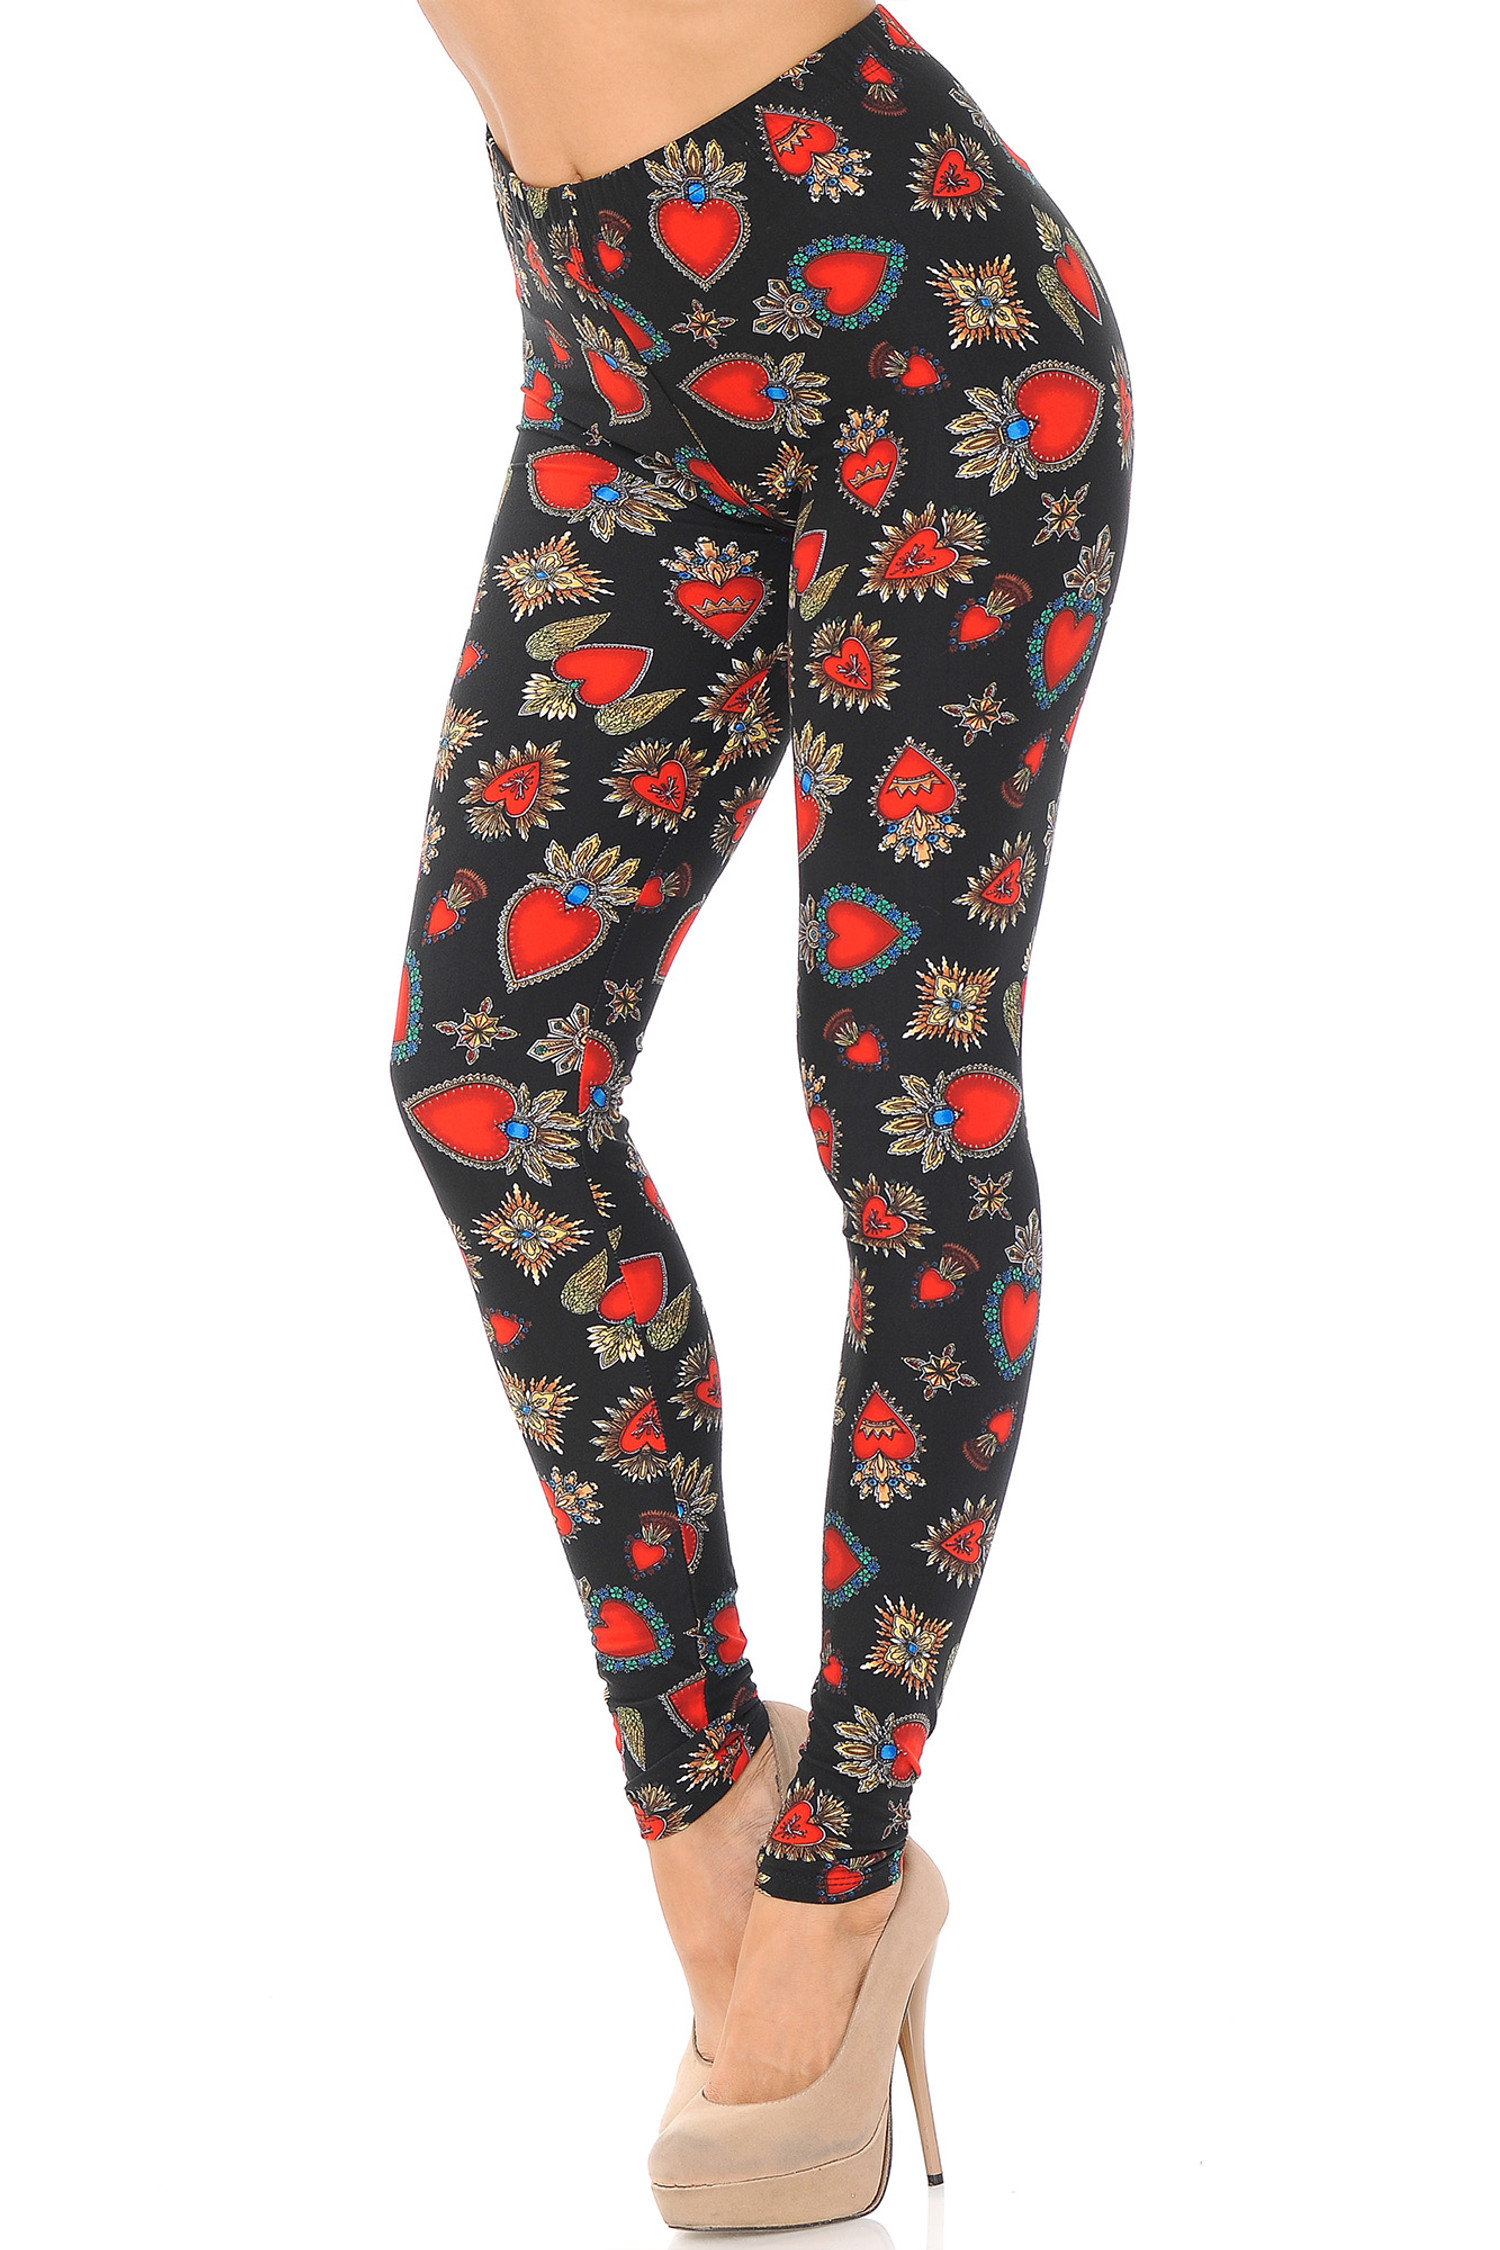 Brushed Jeweled Hearts Leggings